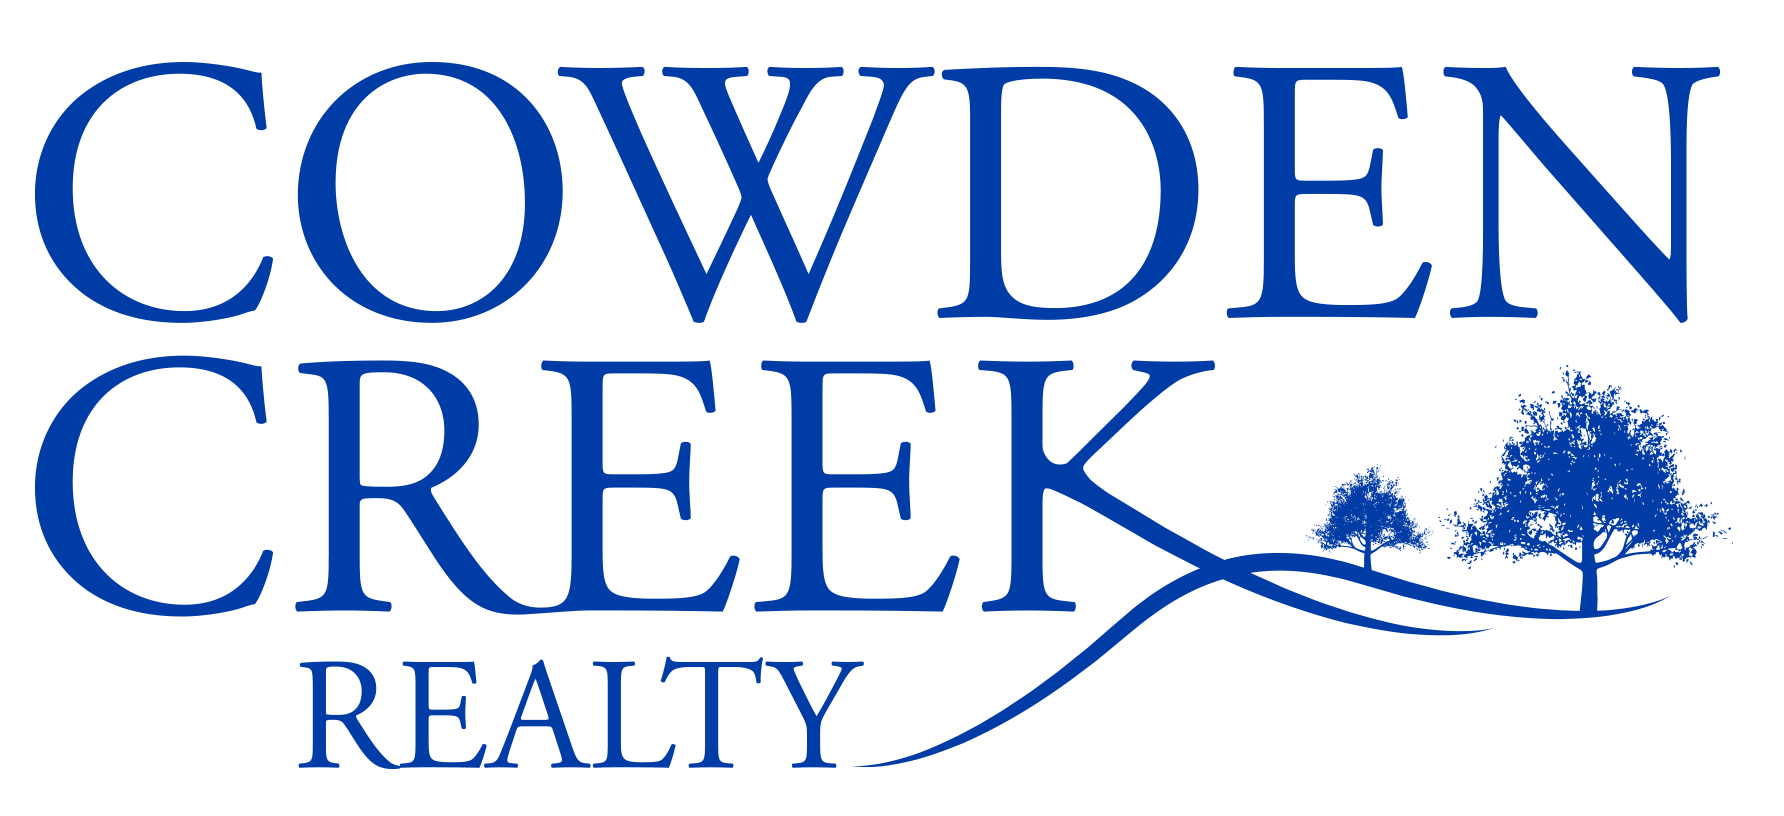 Cowden Creek Realty, LLC